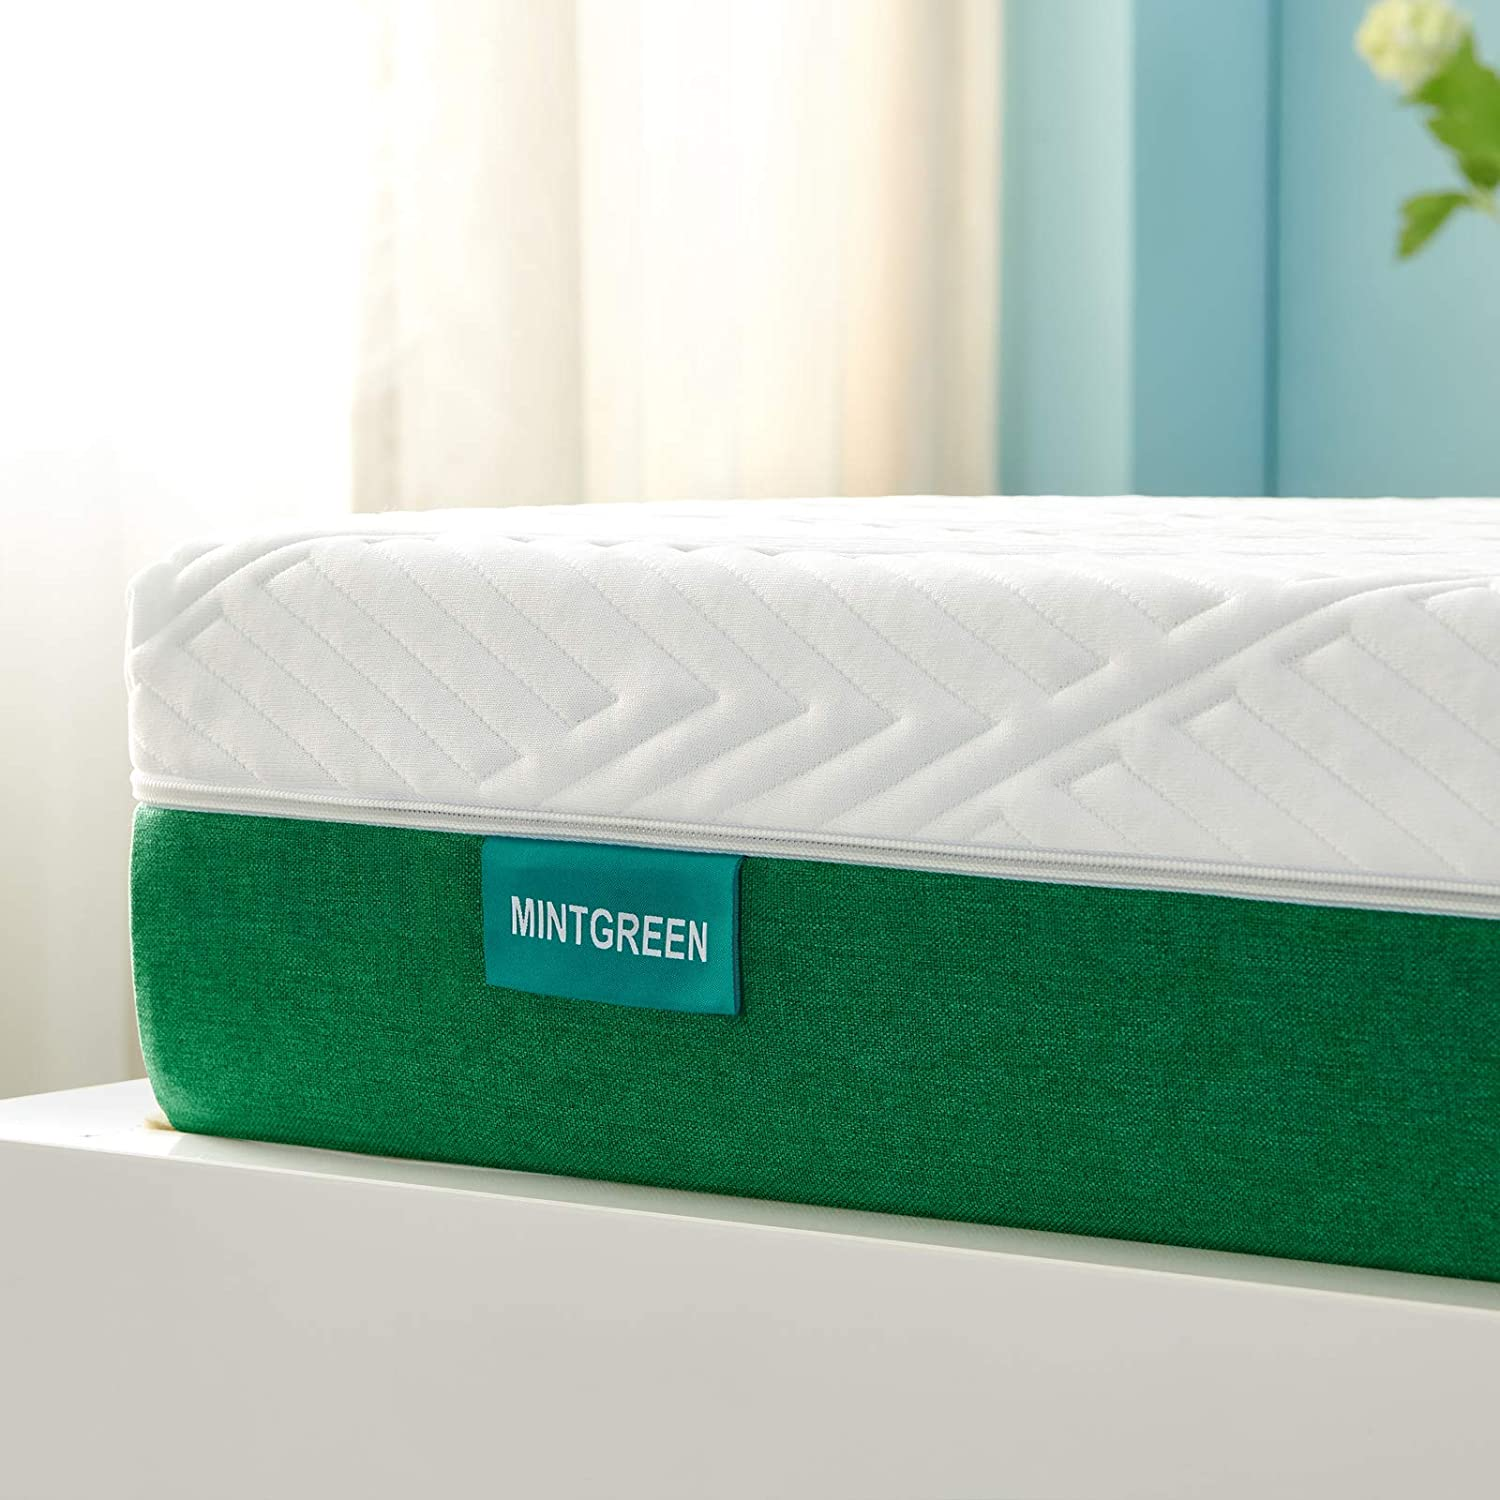 Twin MattressMintgreen 8 Inch Memory Foam Mattress in a Box Breathable Bed Comfortable Mattress with CertiPUR-US Certified Foam for Sleep Supportive & Pressure Relief Twin Size Mattress 39